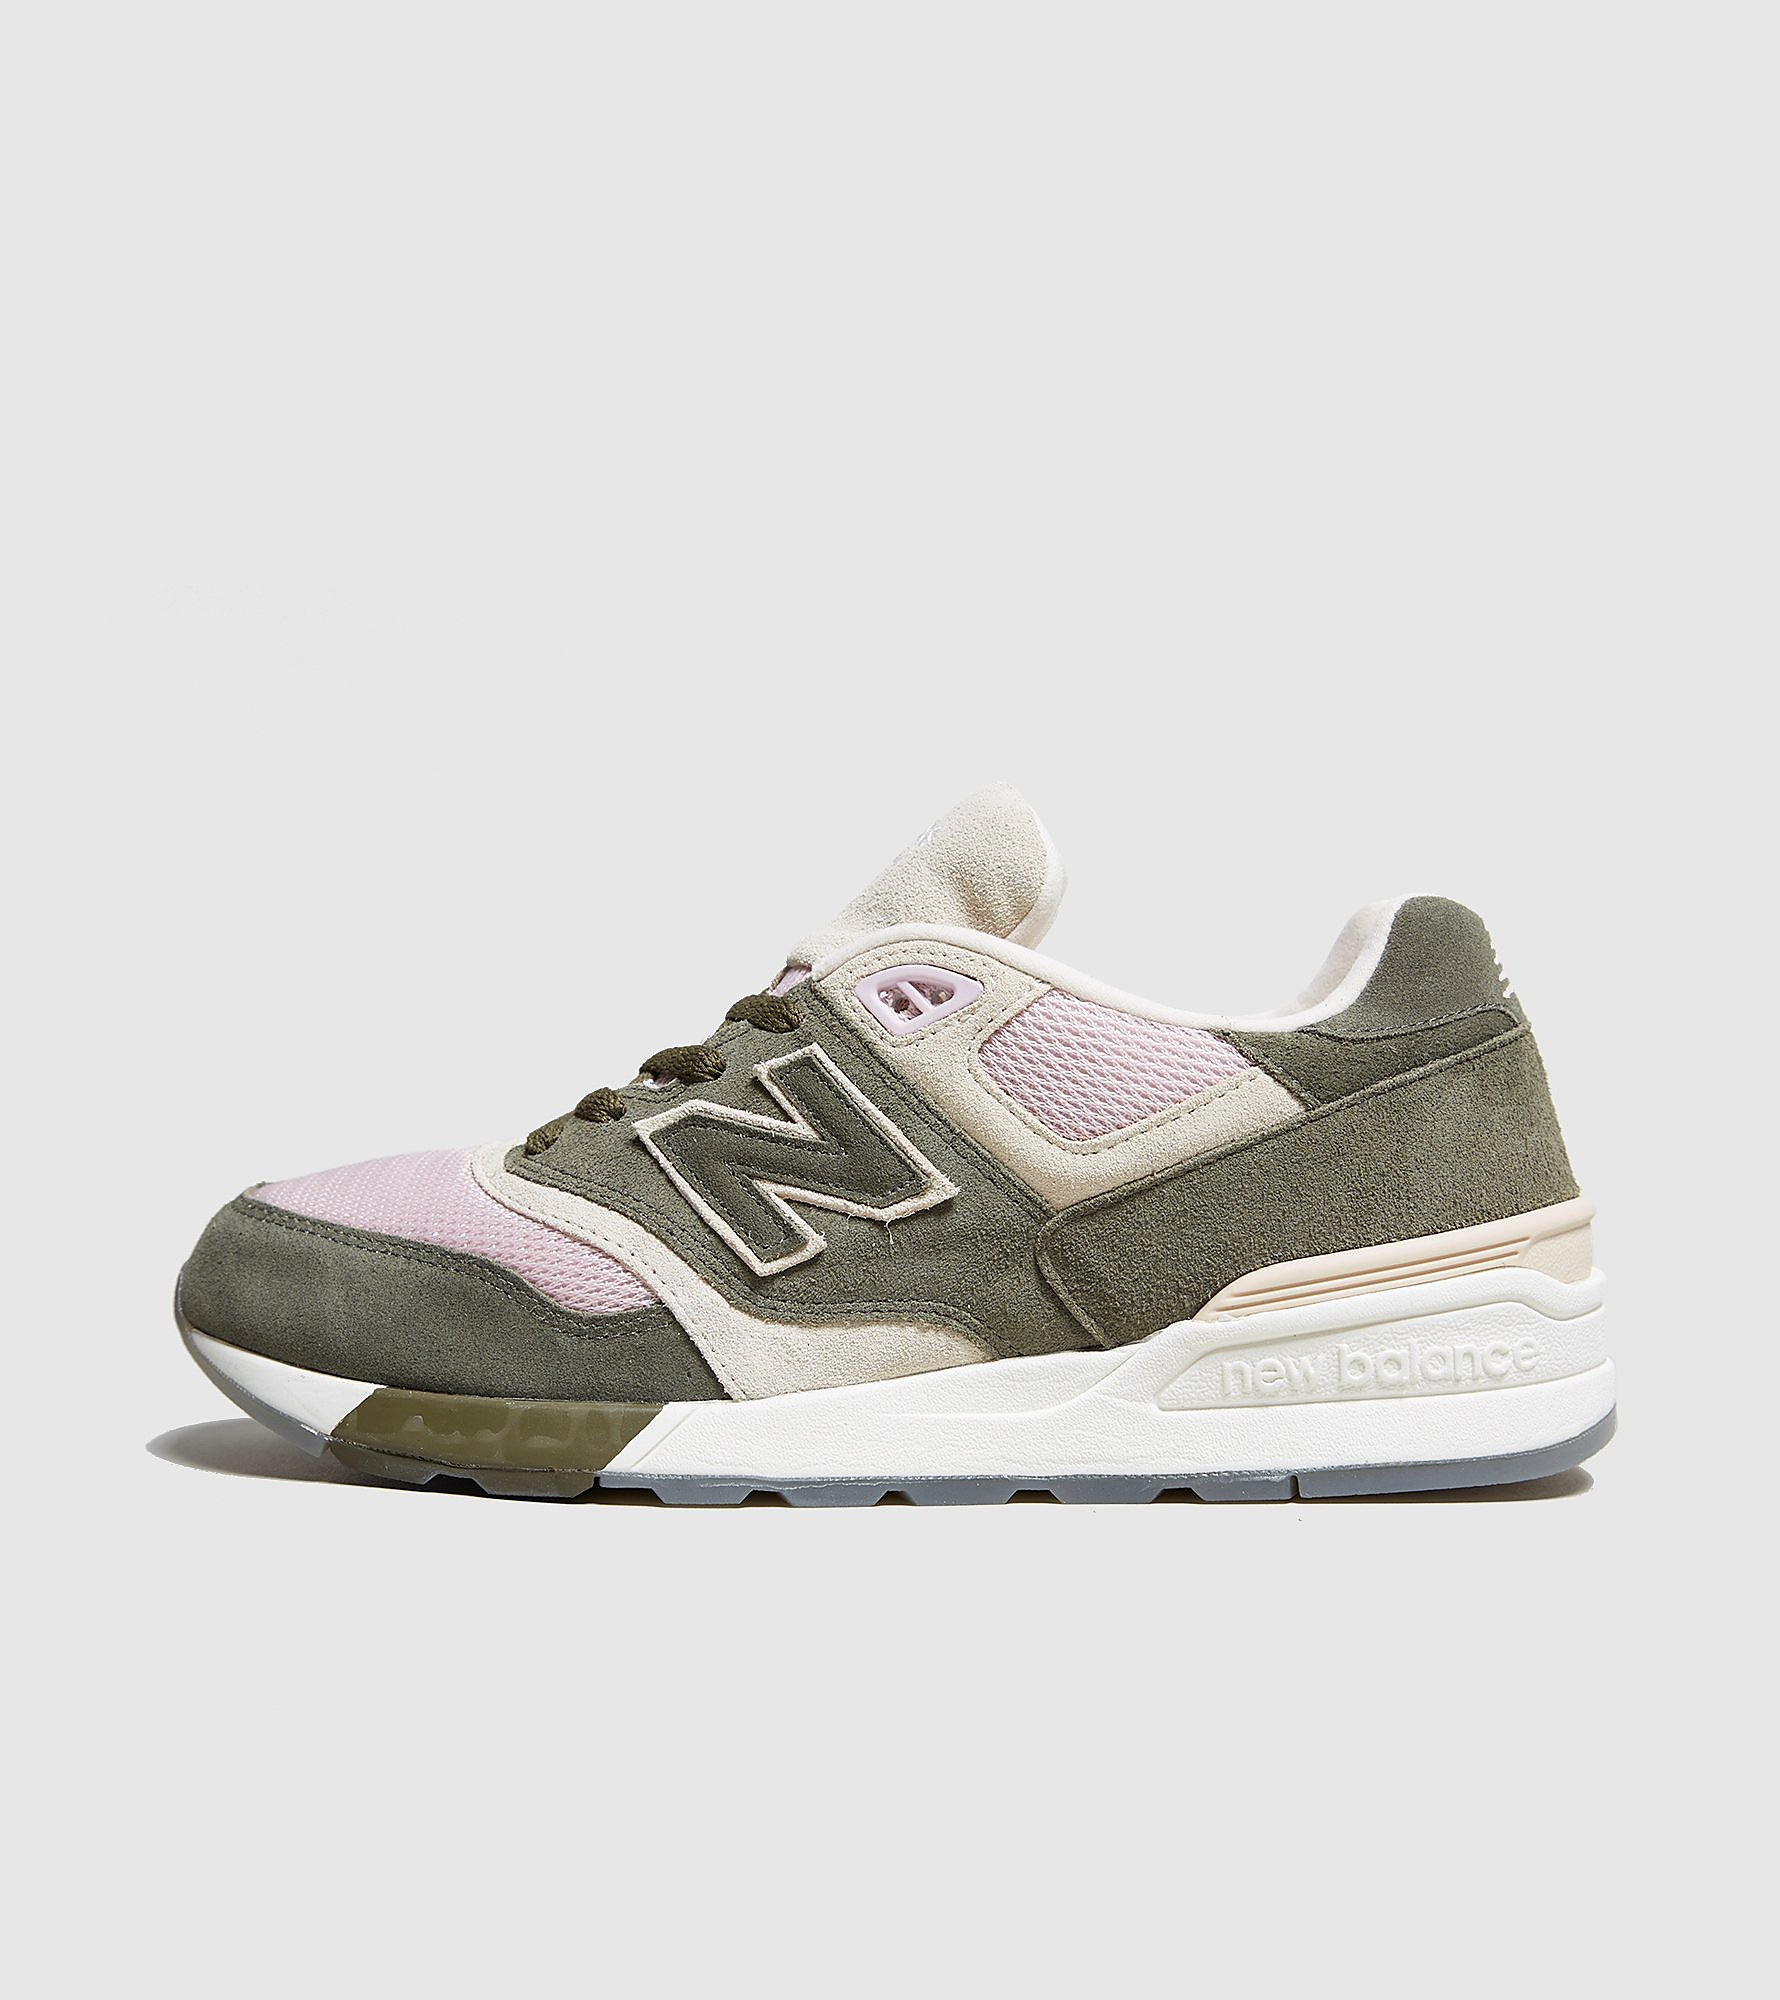 buy online 4abe7 6c314 New Balance 597 size? Exclusive, Green